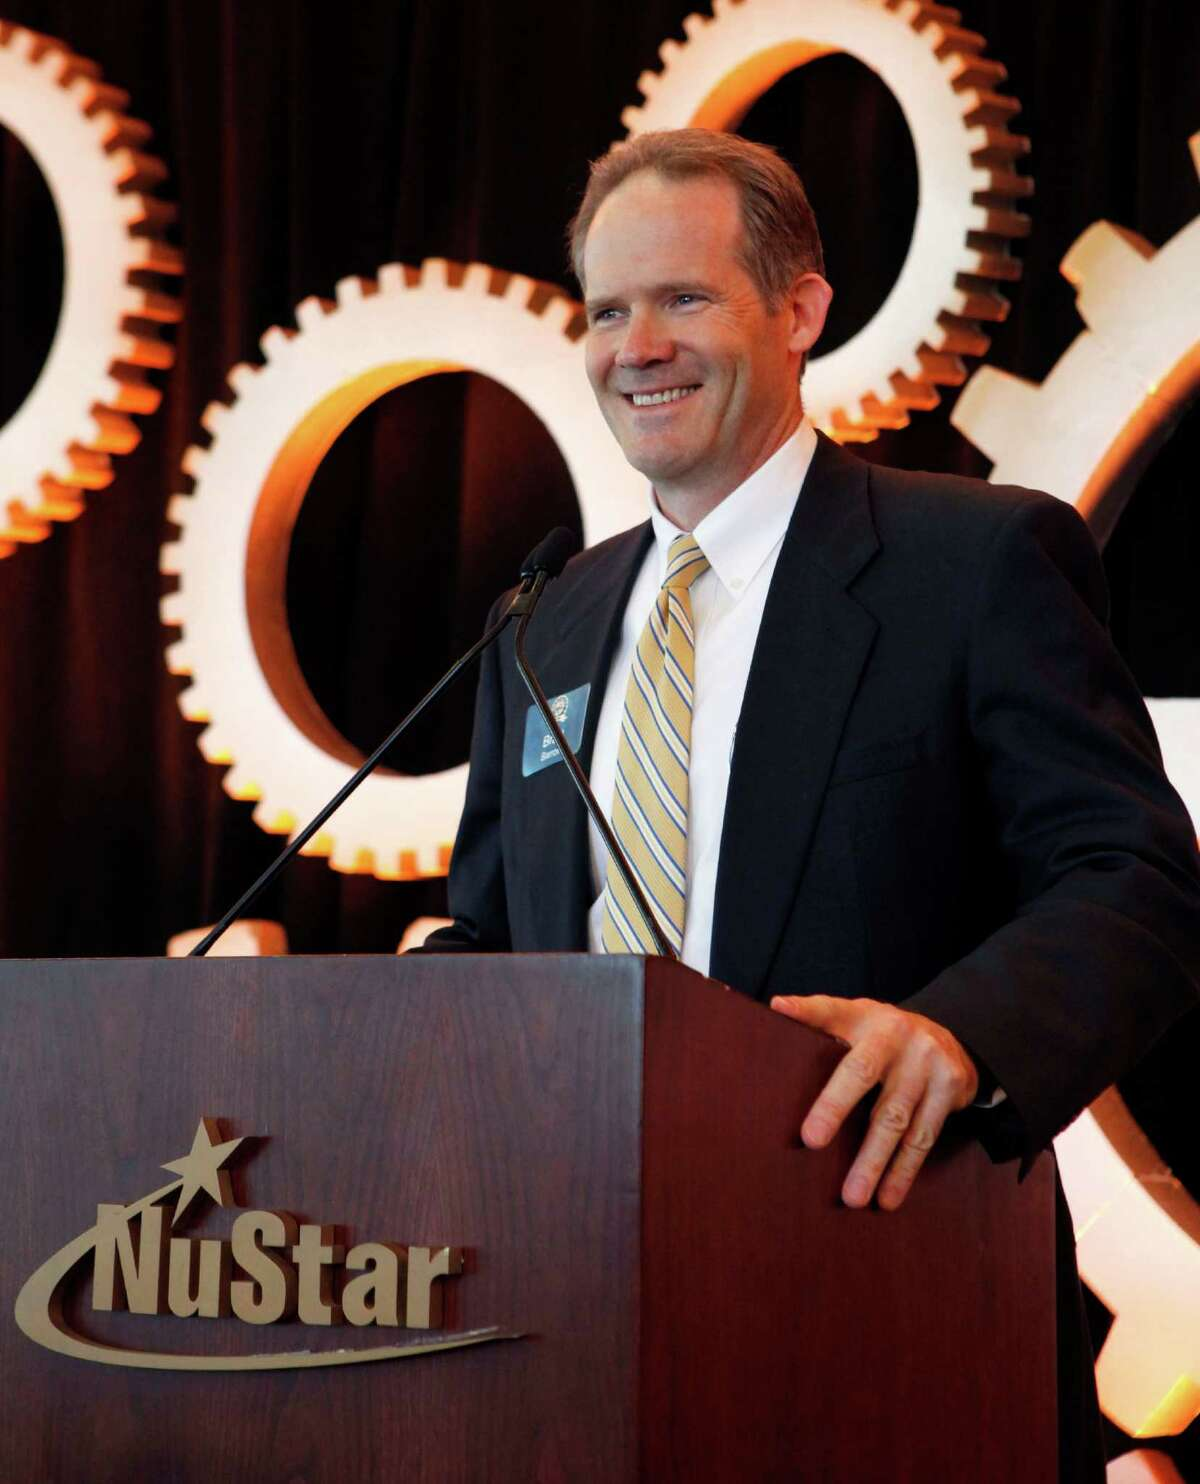 NuStar employees singled out CEO Brad Barron for praise, saying he is decisive while providing clear direction and expectations.